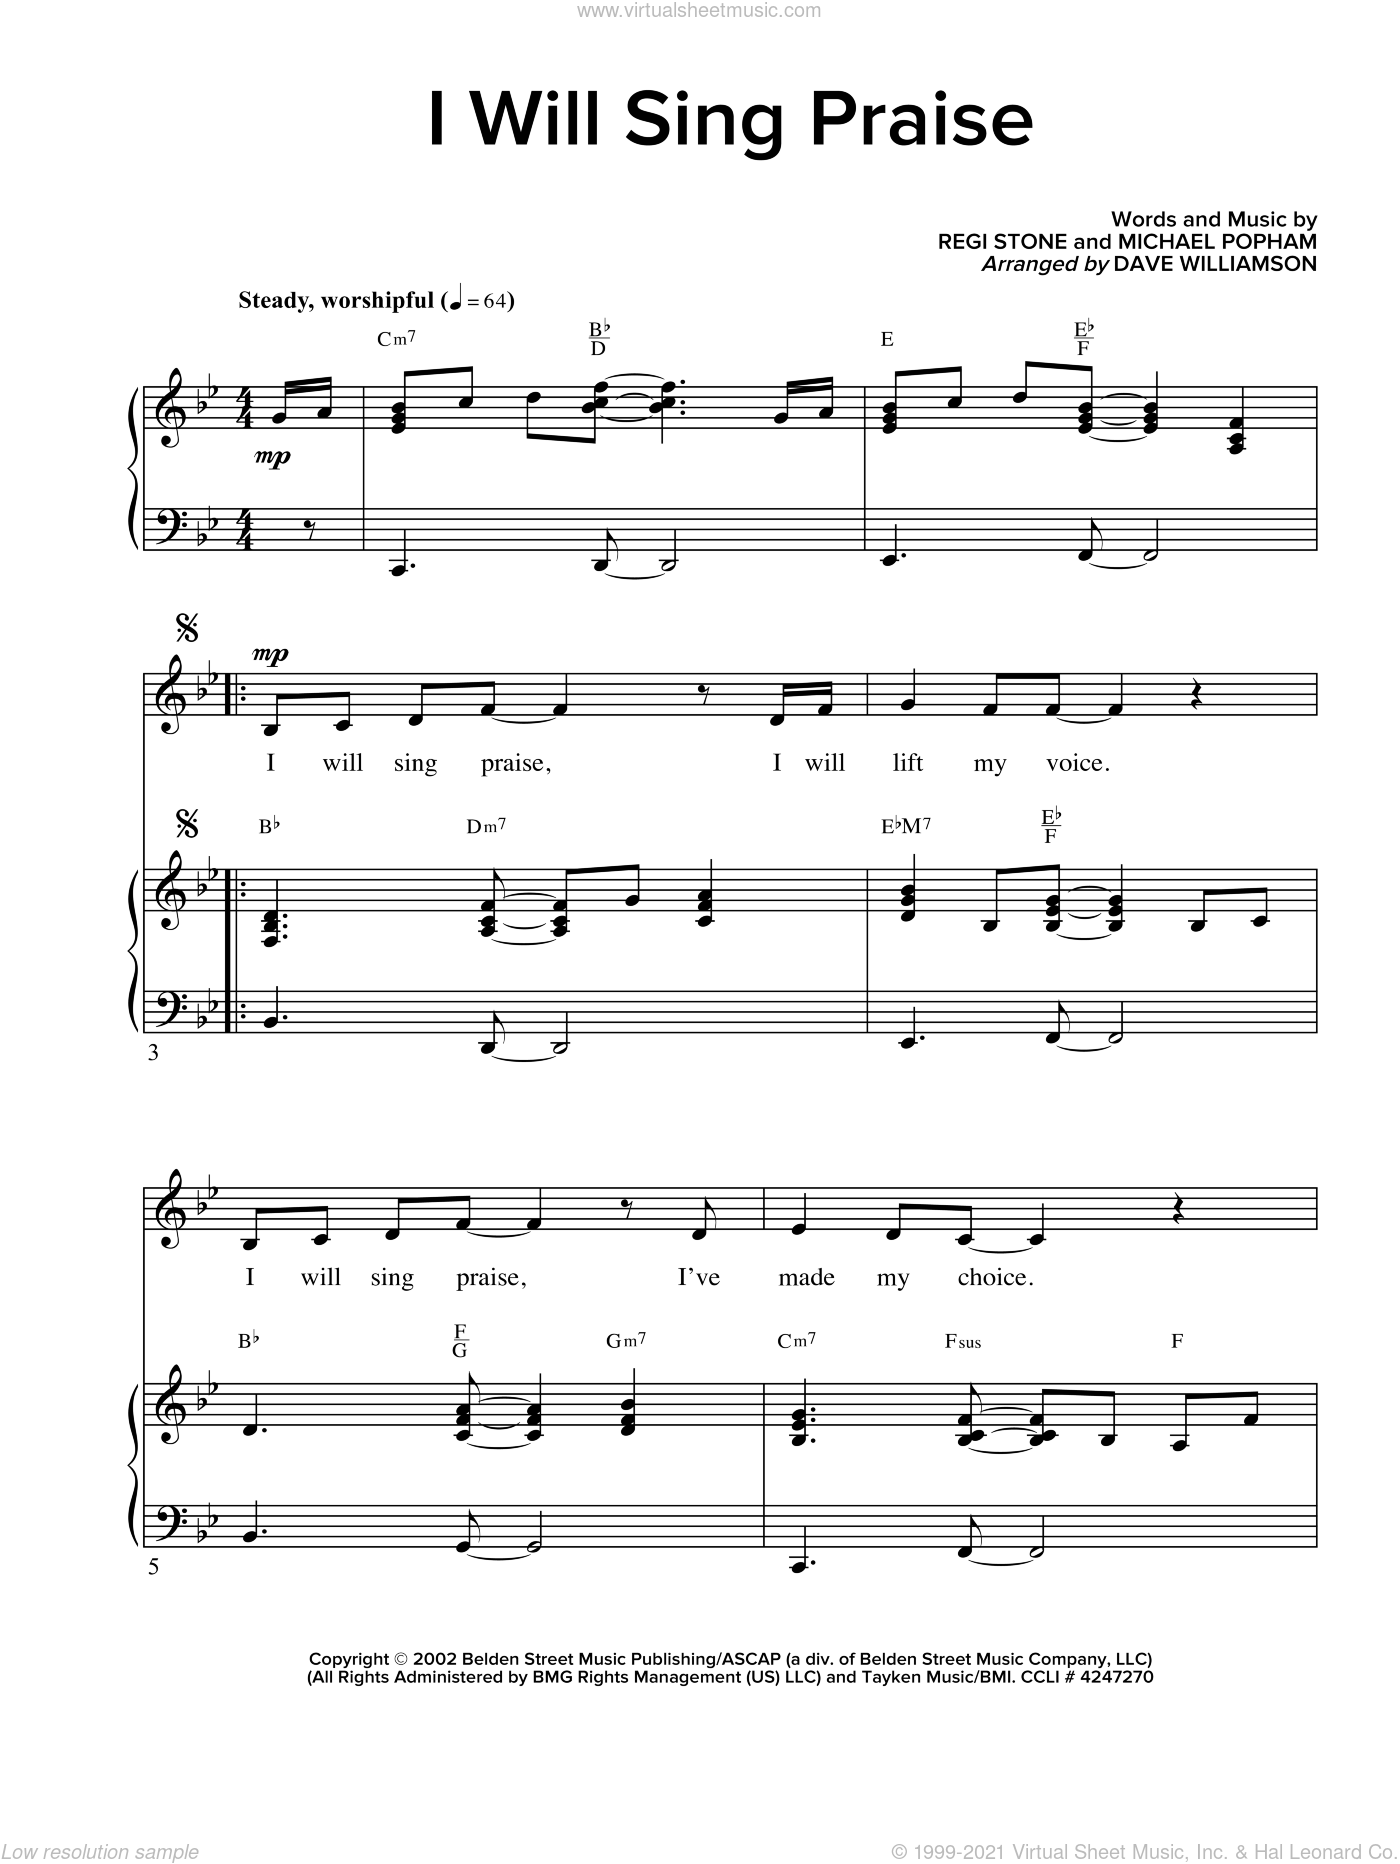 I Will Sing Praise sheet music for voice and piano by Michael D. Popham and Regi Stone, intermediate